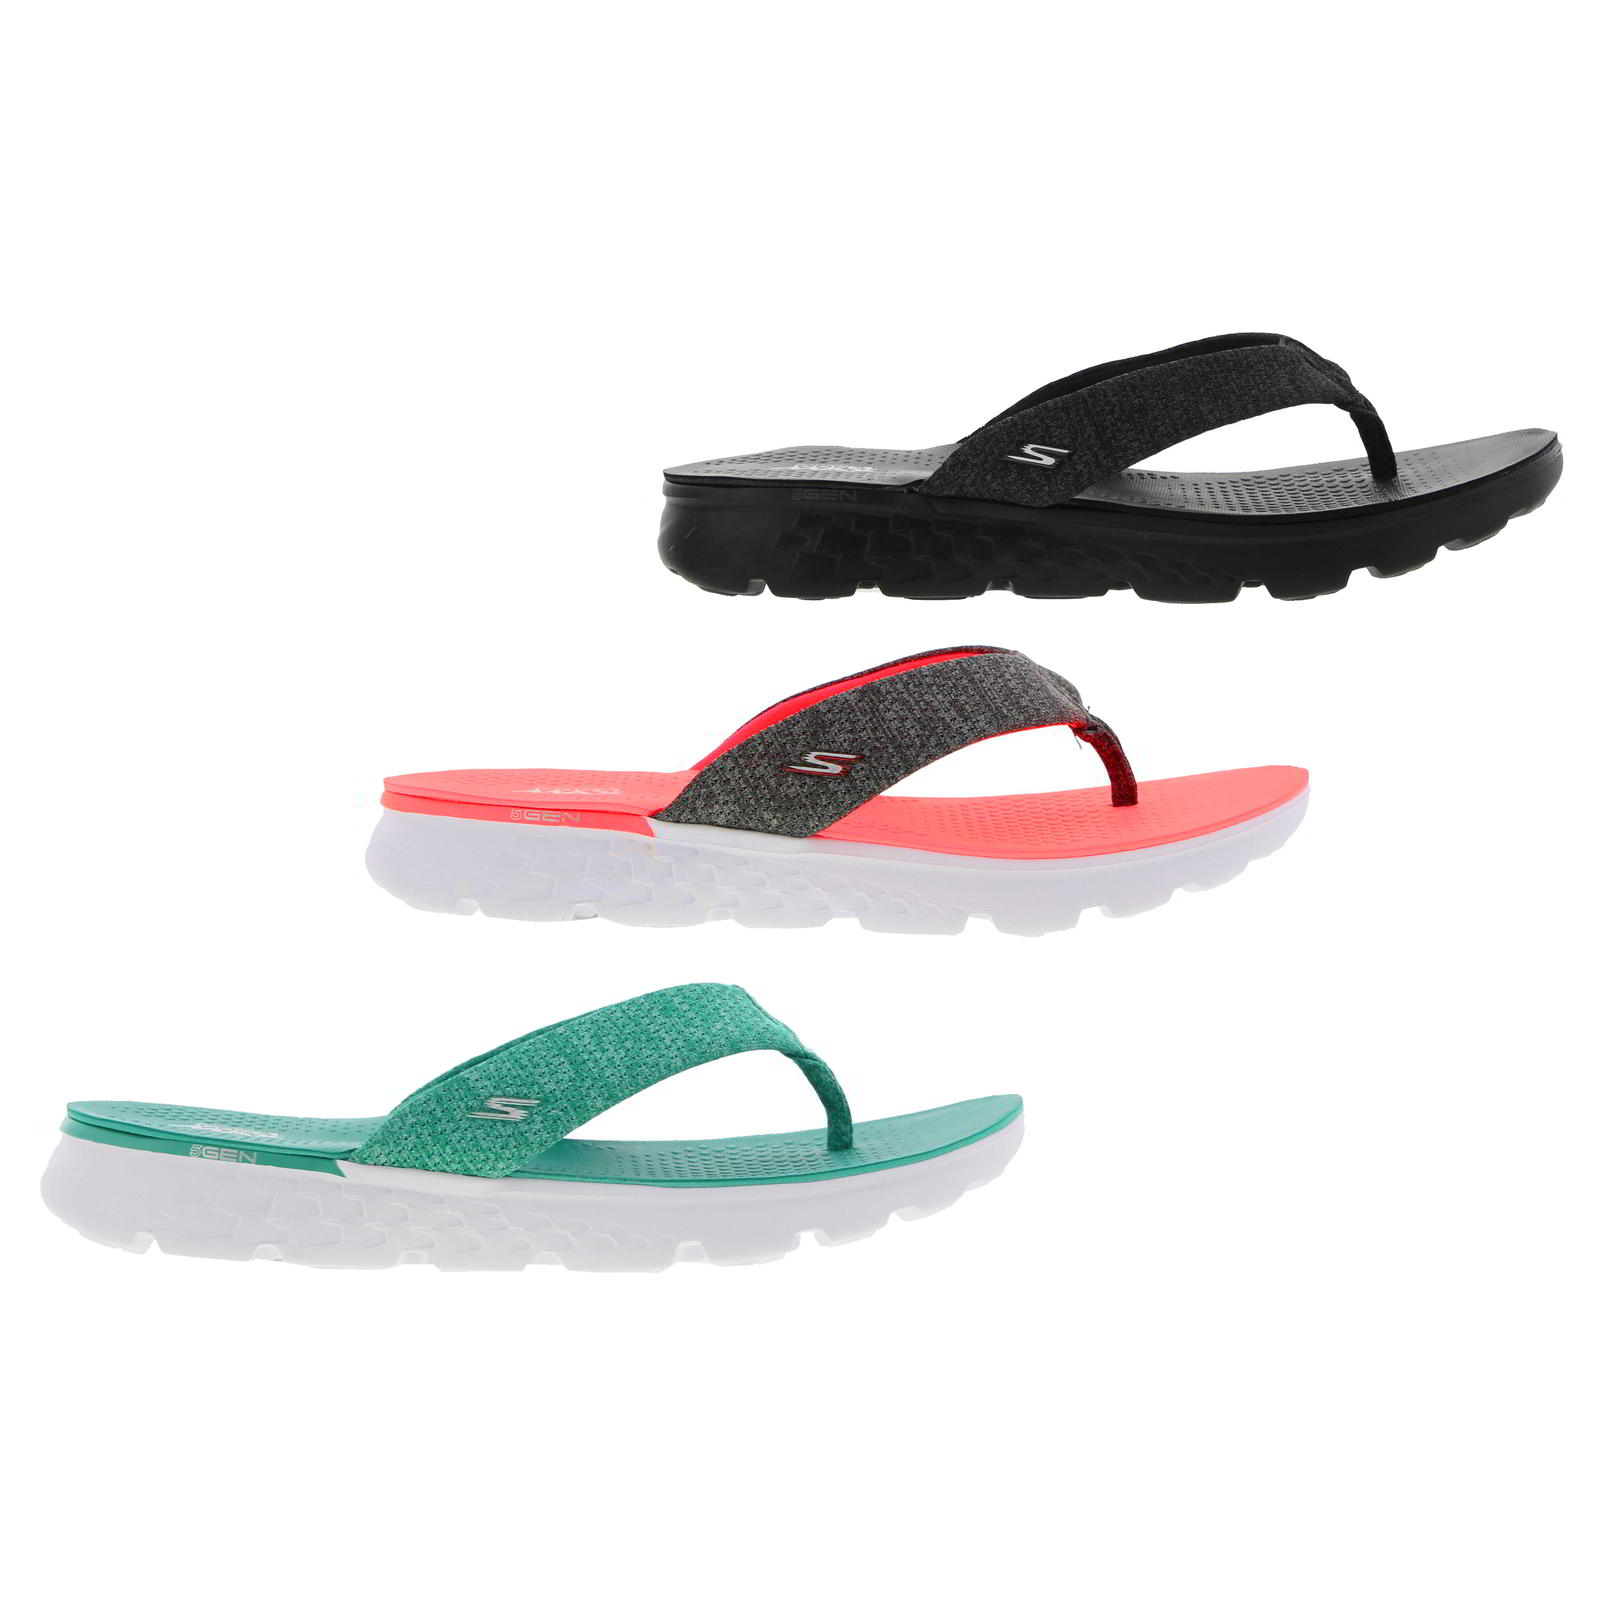 34c4cb01c745 Skechers On The Go Vivacity Womens Top Post Flip Flops Sandals Size ...